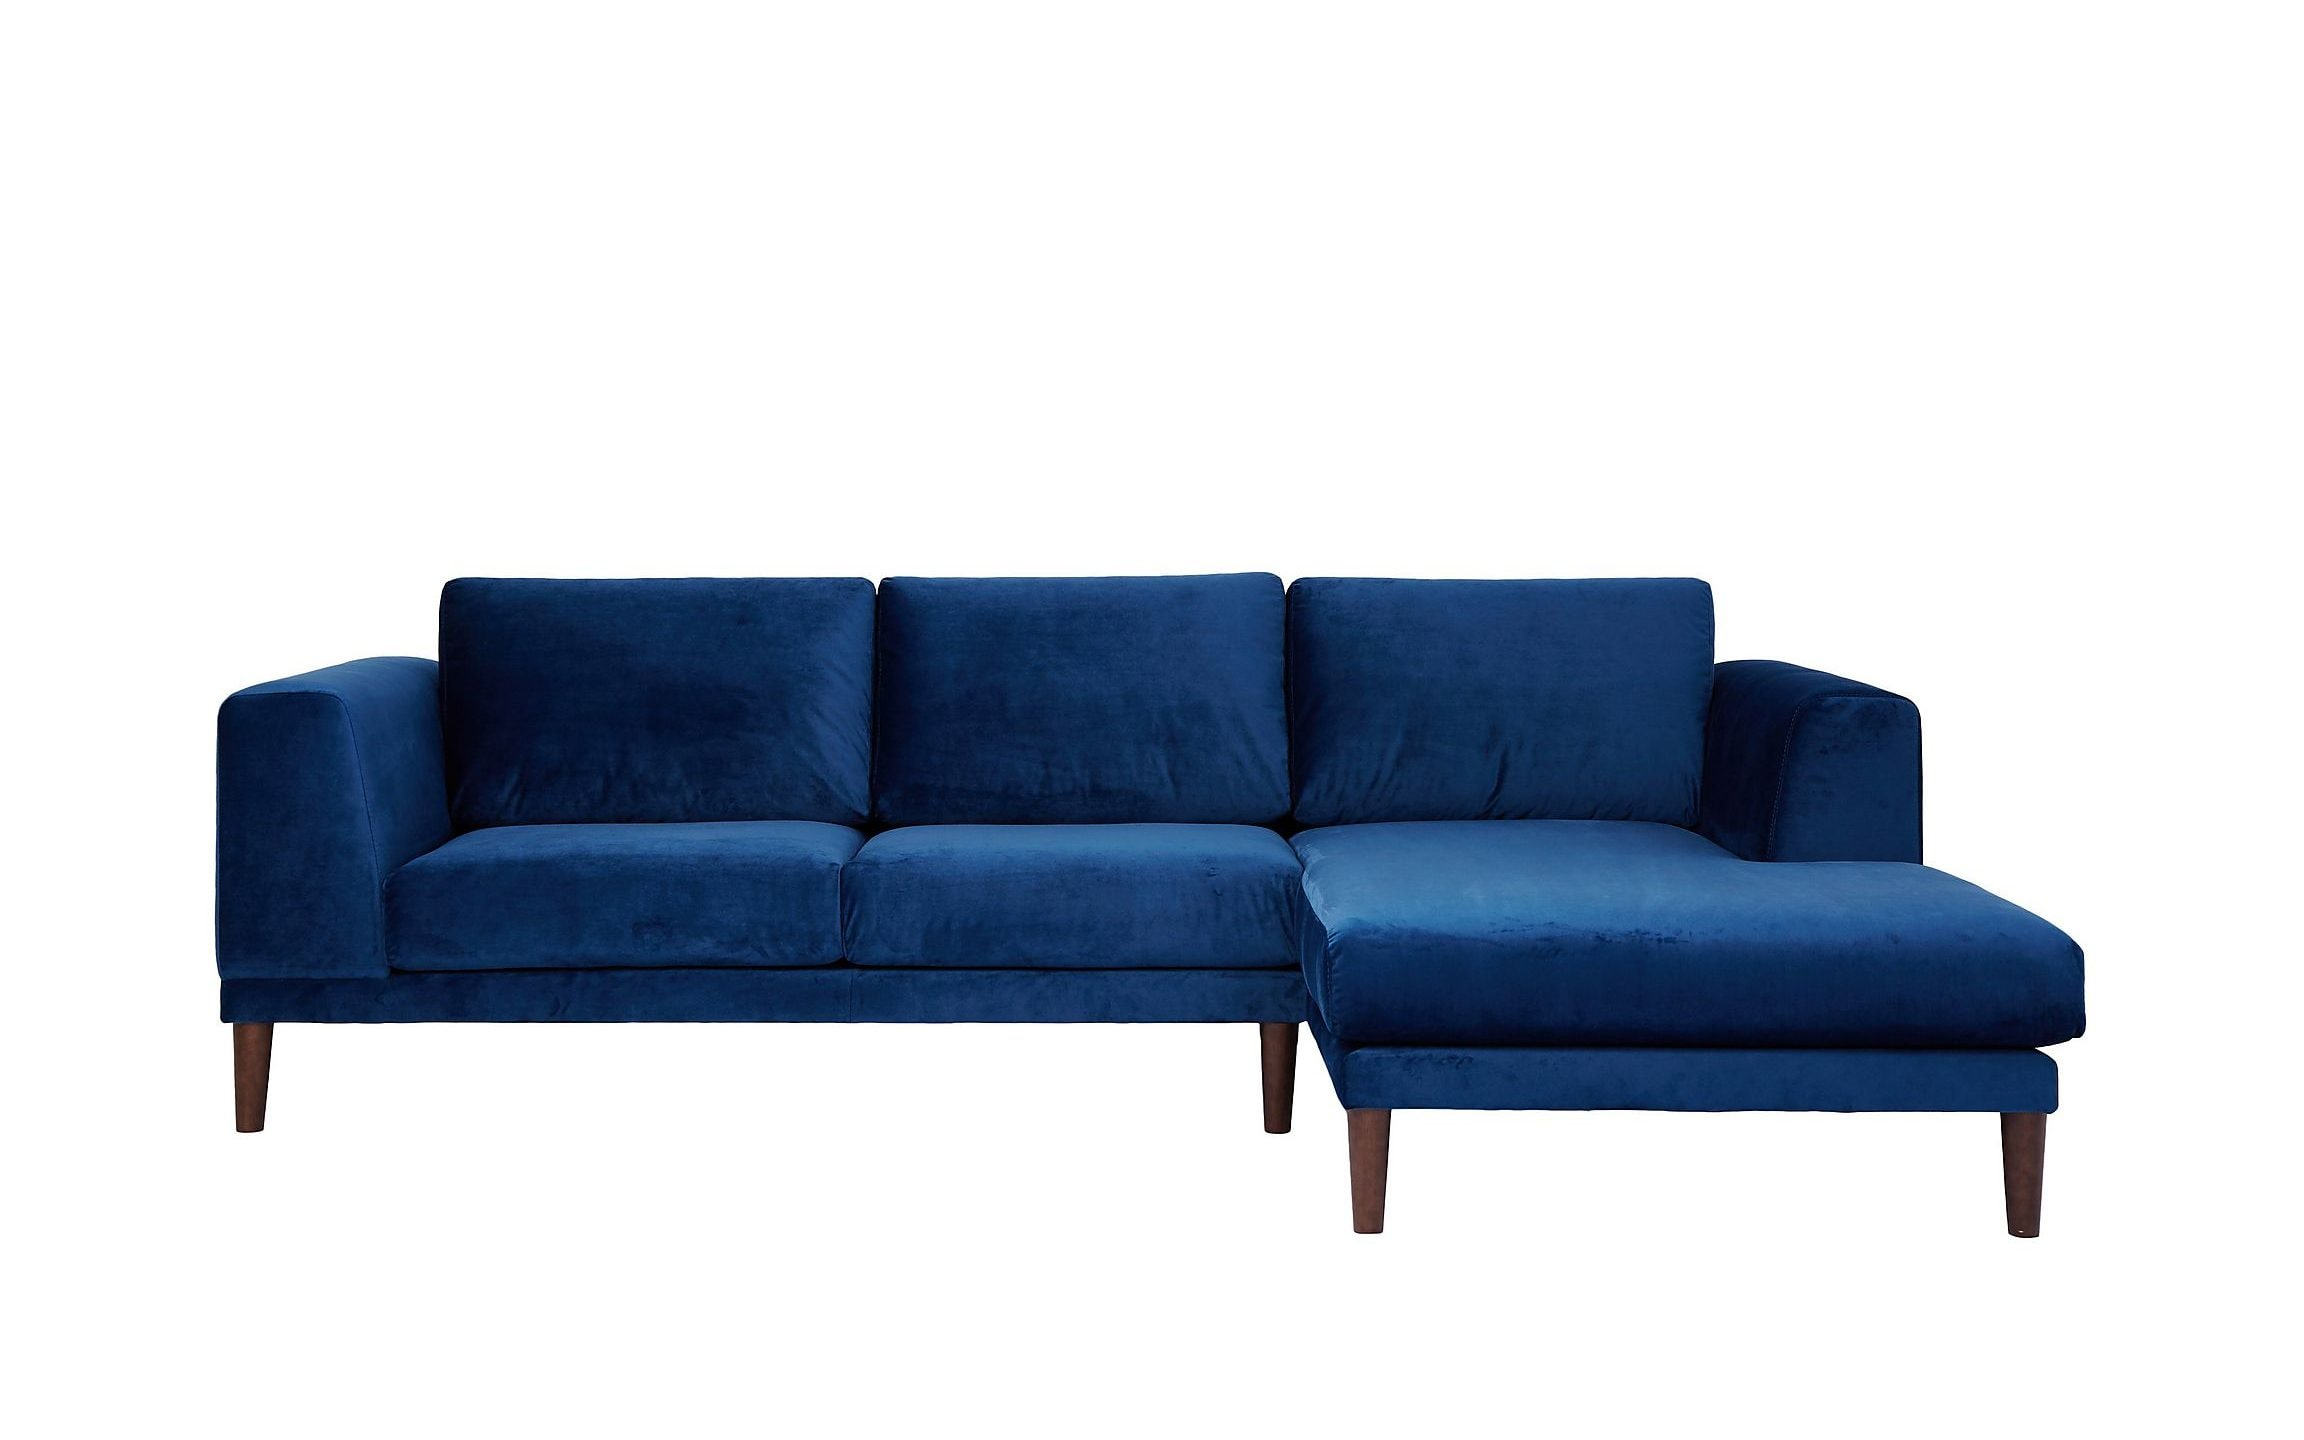 Chesterfield Sofa Online Uk 17 Of The Best Sofas And Couches To Buy For All Budgets